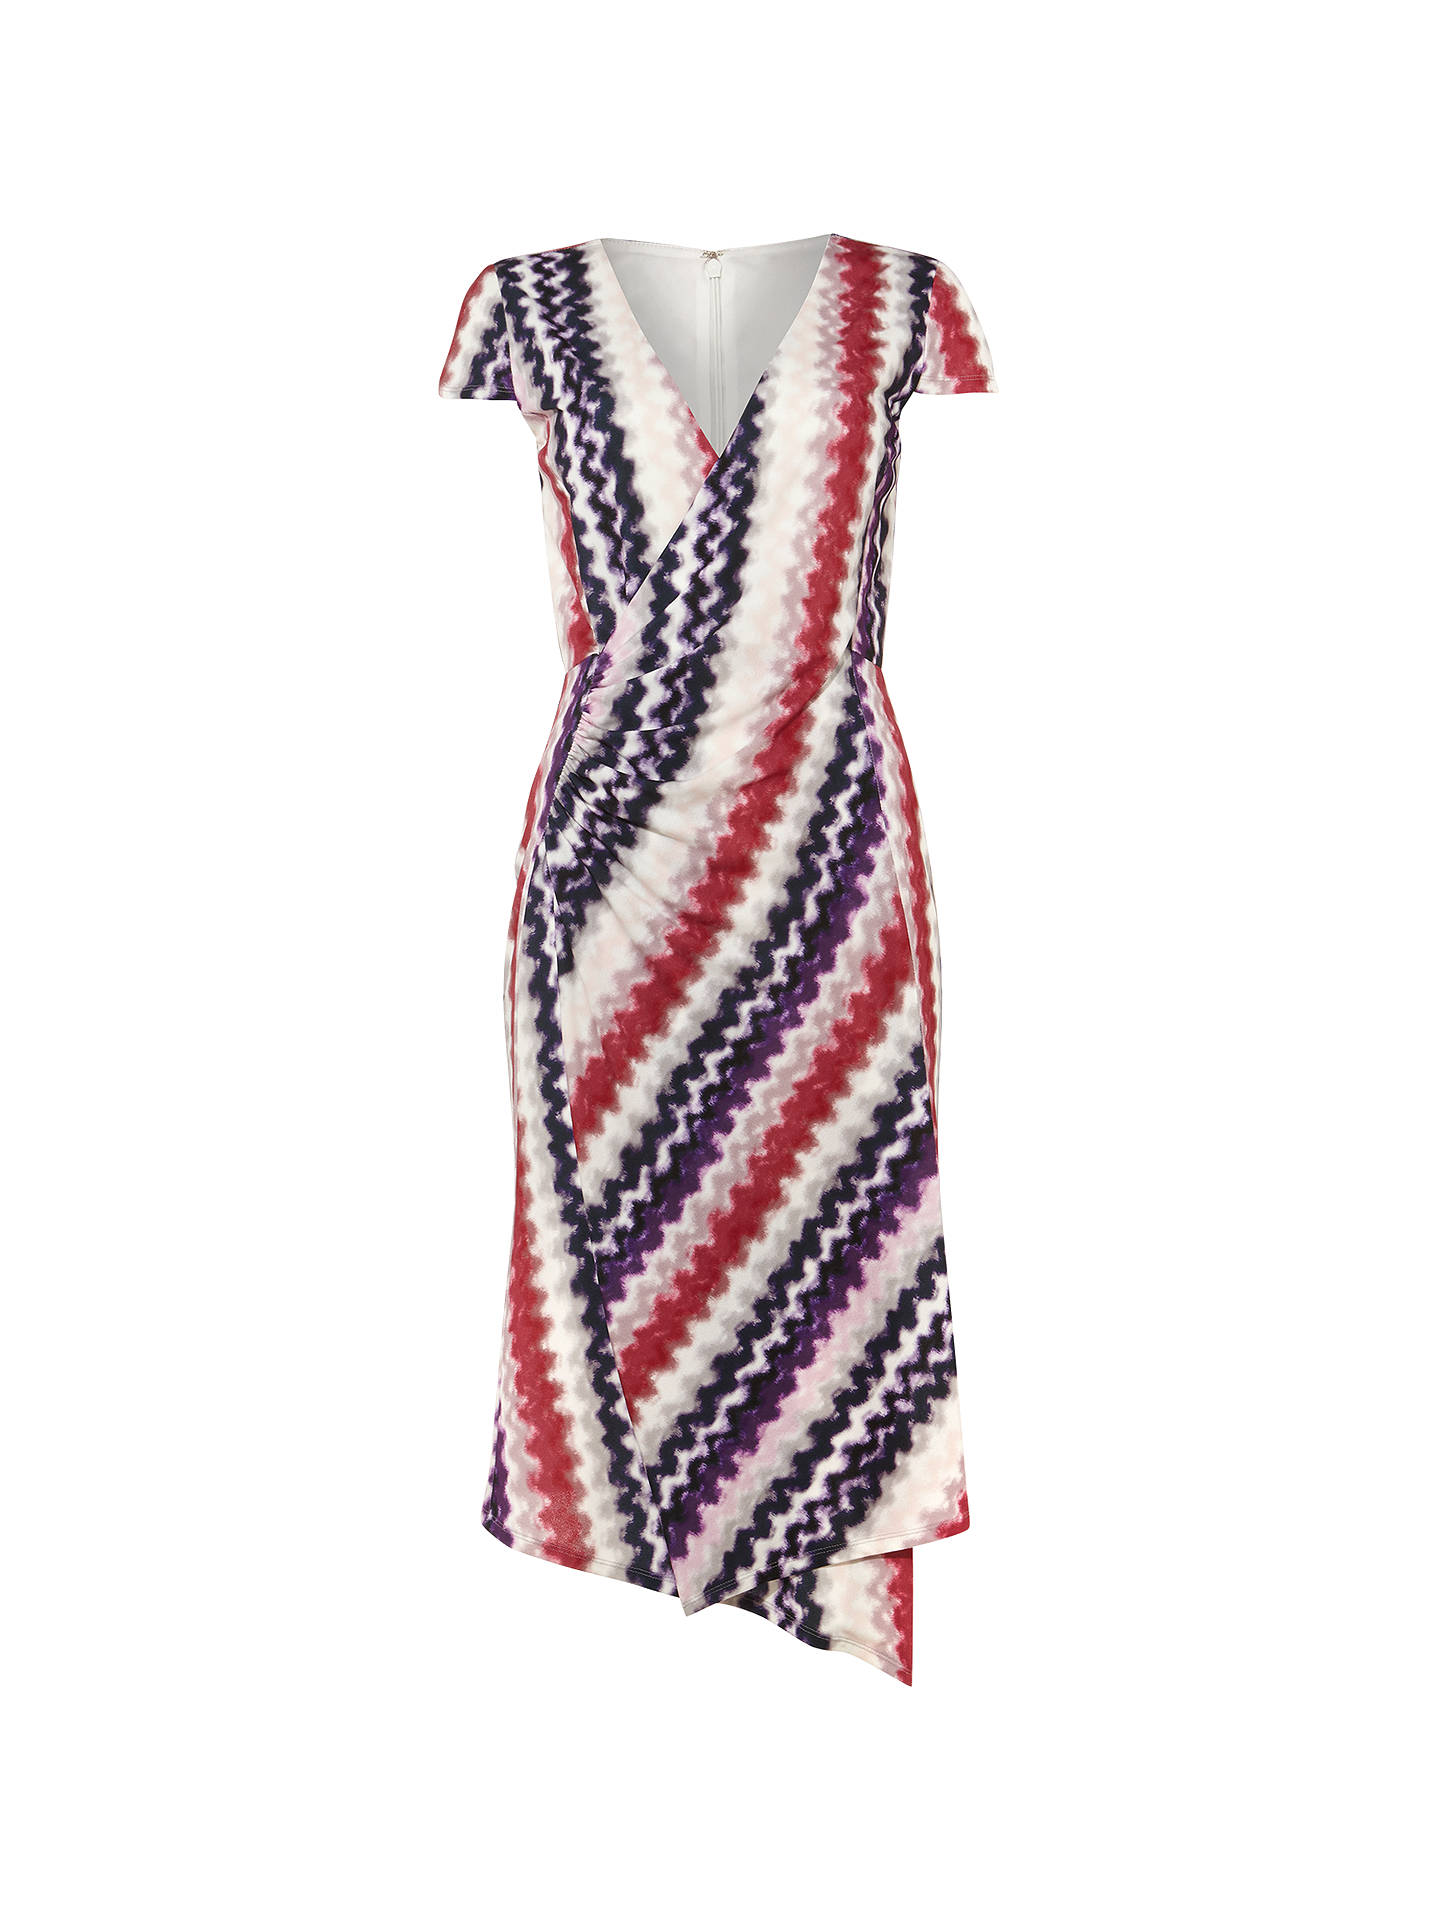 BuyDamsel in a Dress Dashi Print Wrap Dress, Multi, 10 Online at johnlewis.com